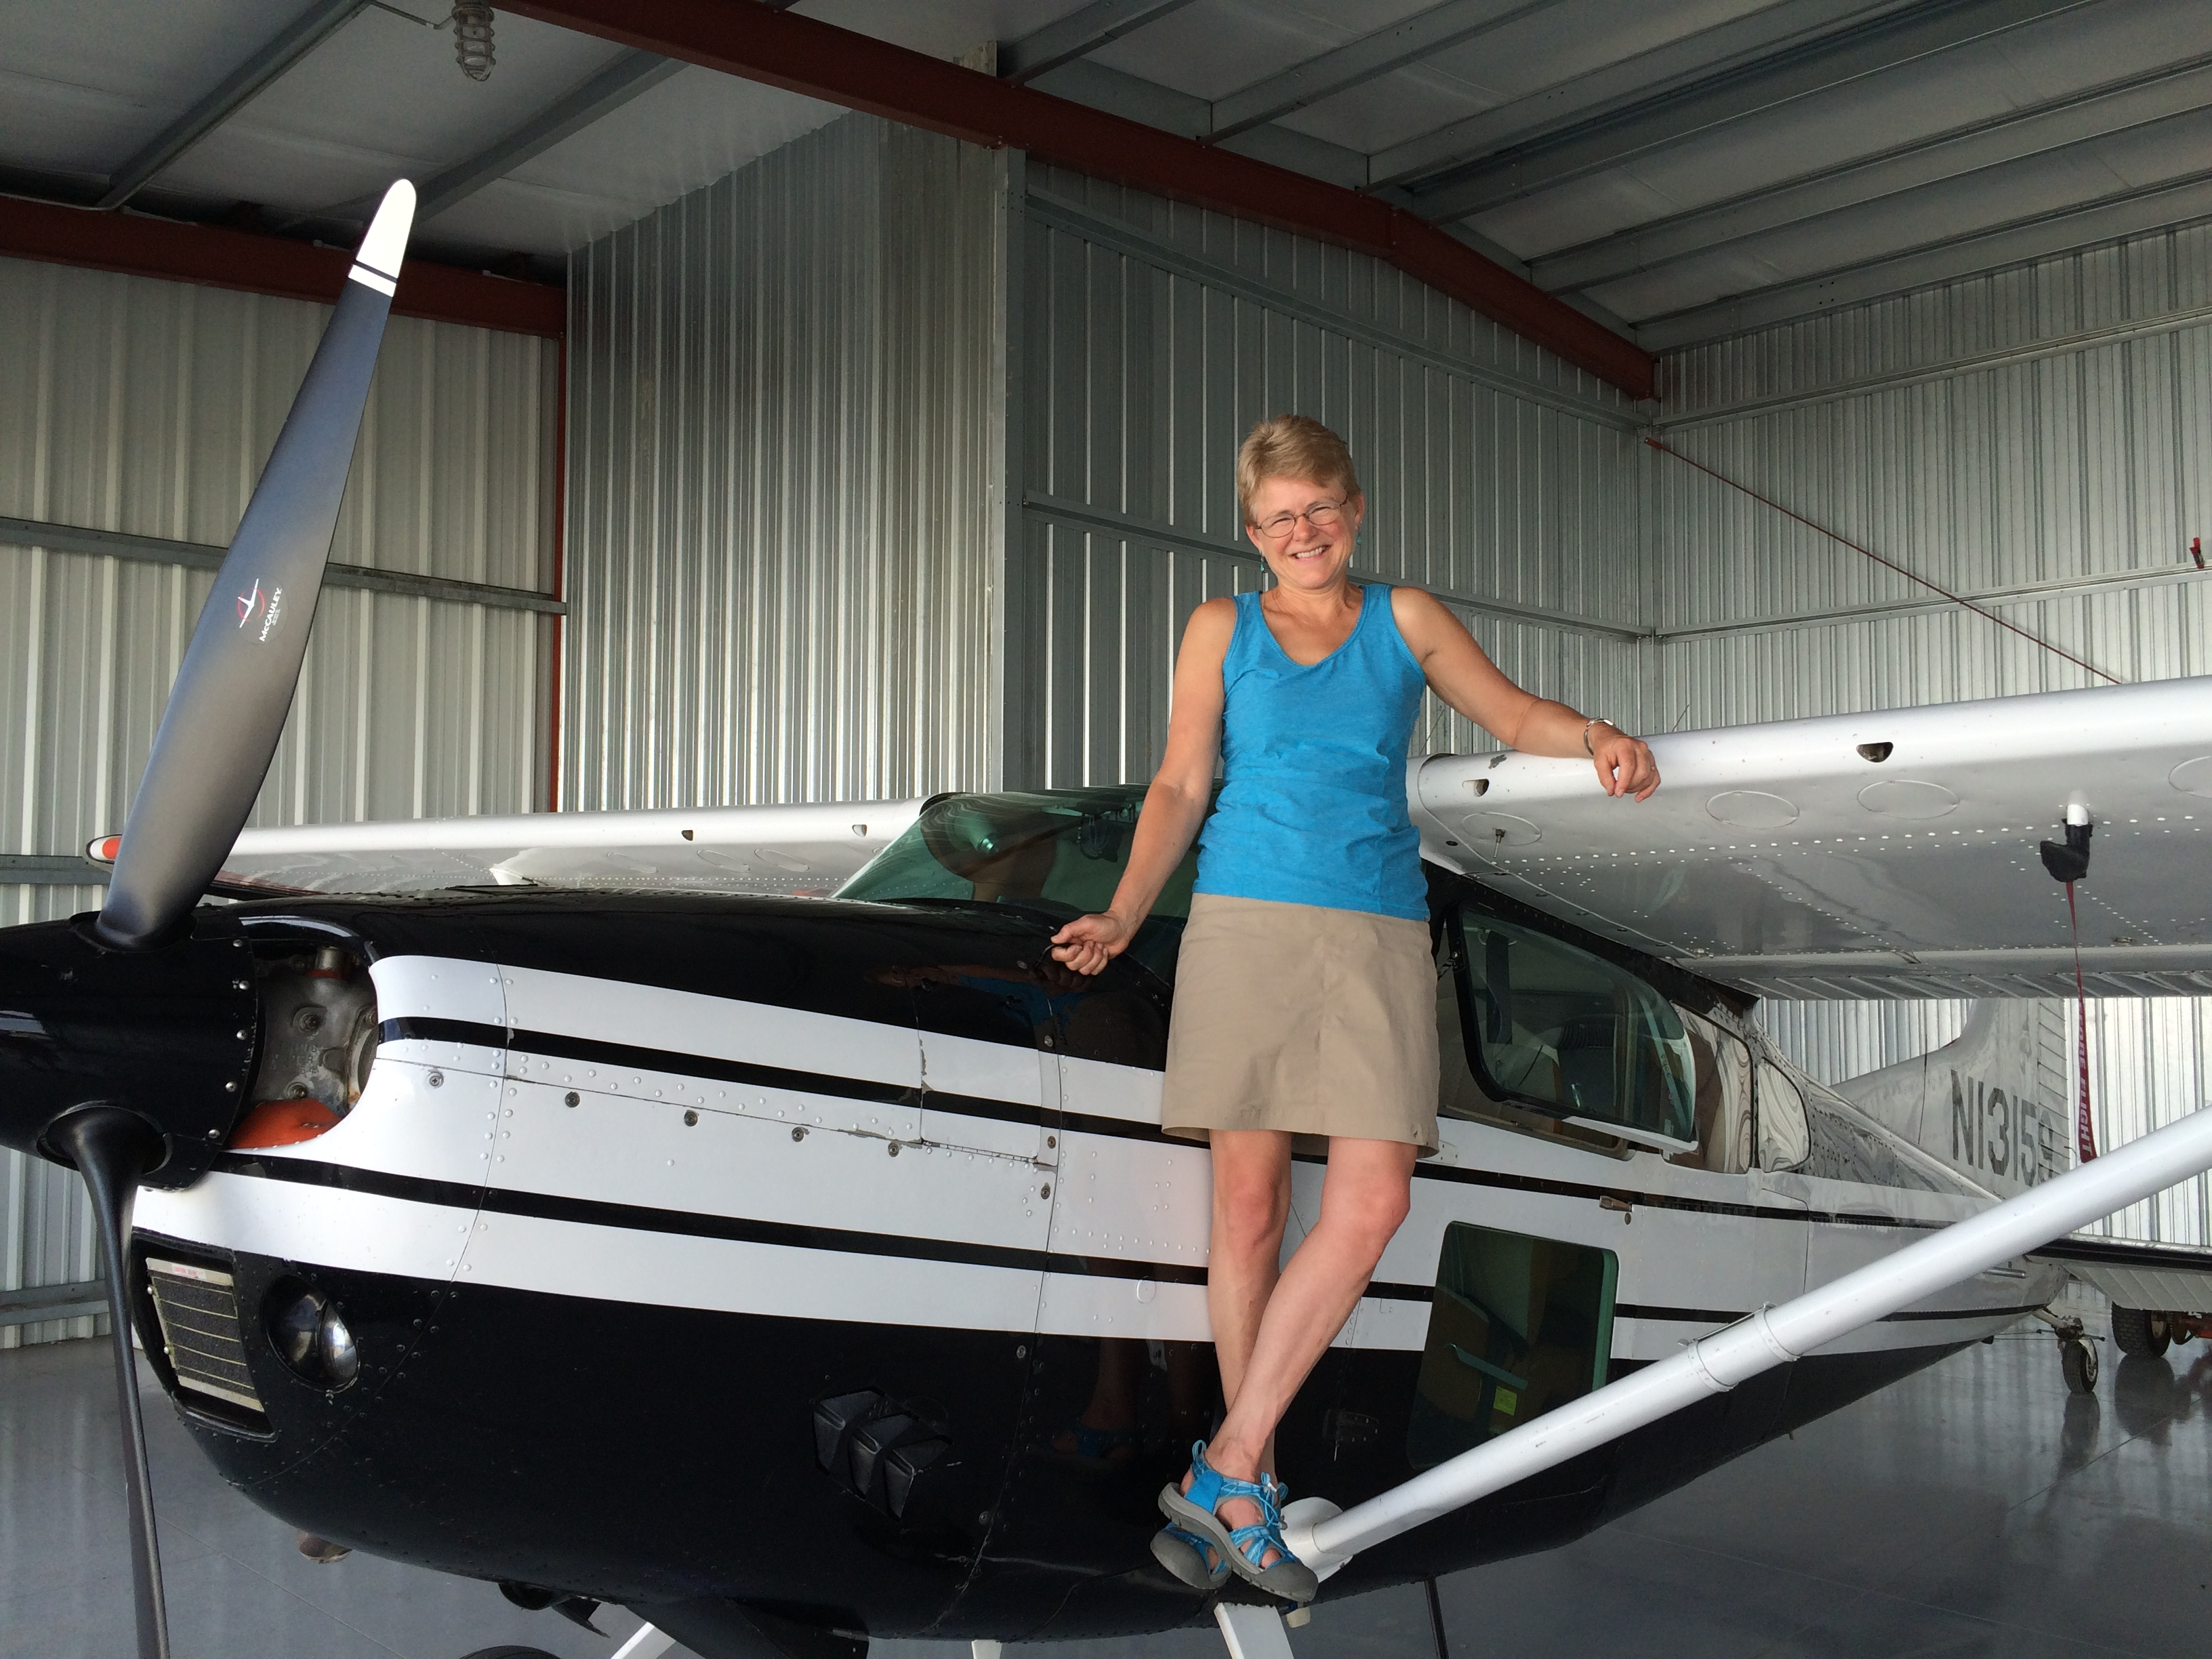 Pilot update from Christine S Mortine